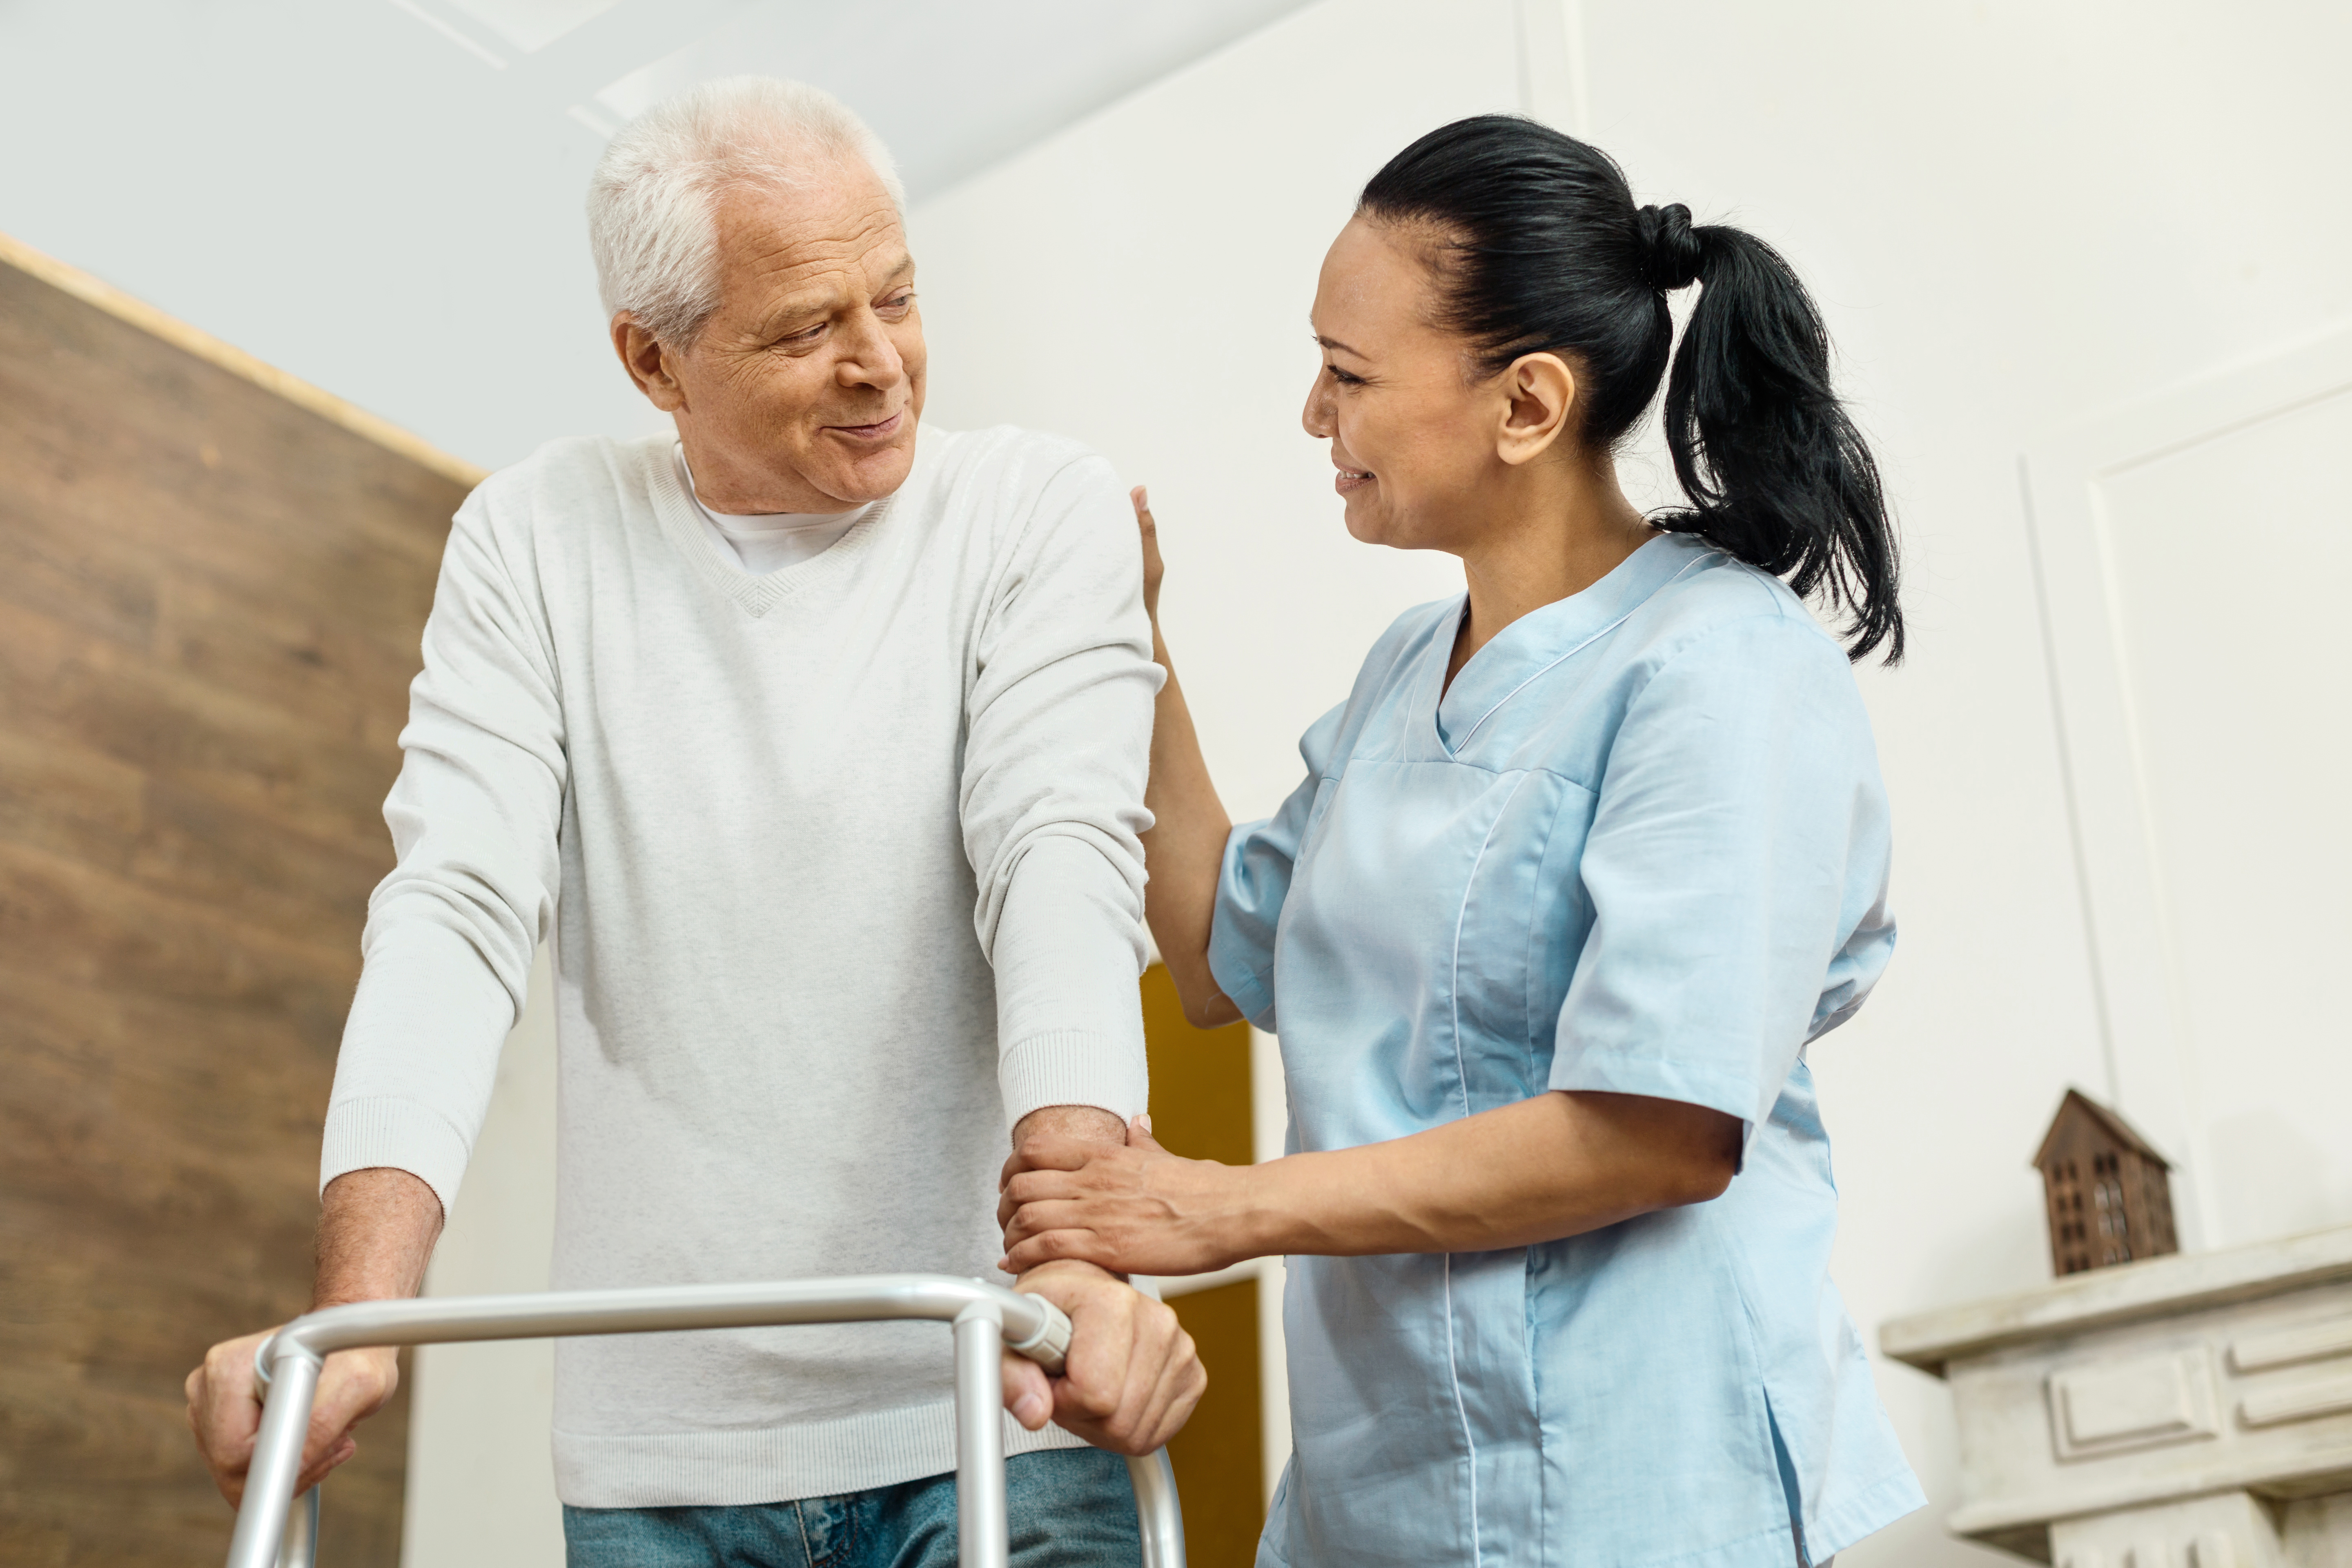 Fall Prevention Devices to Keep Seniors Walking